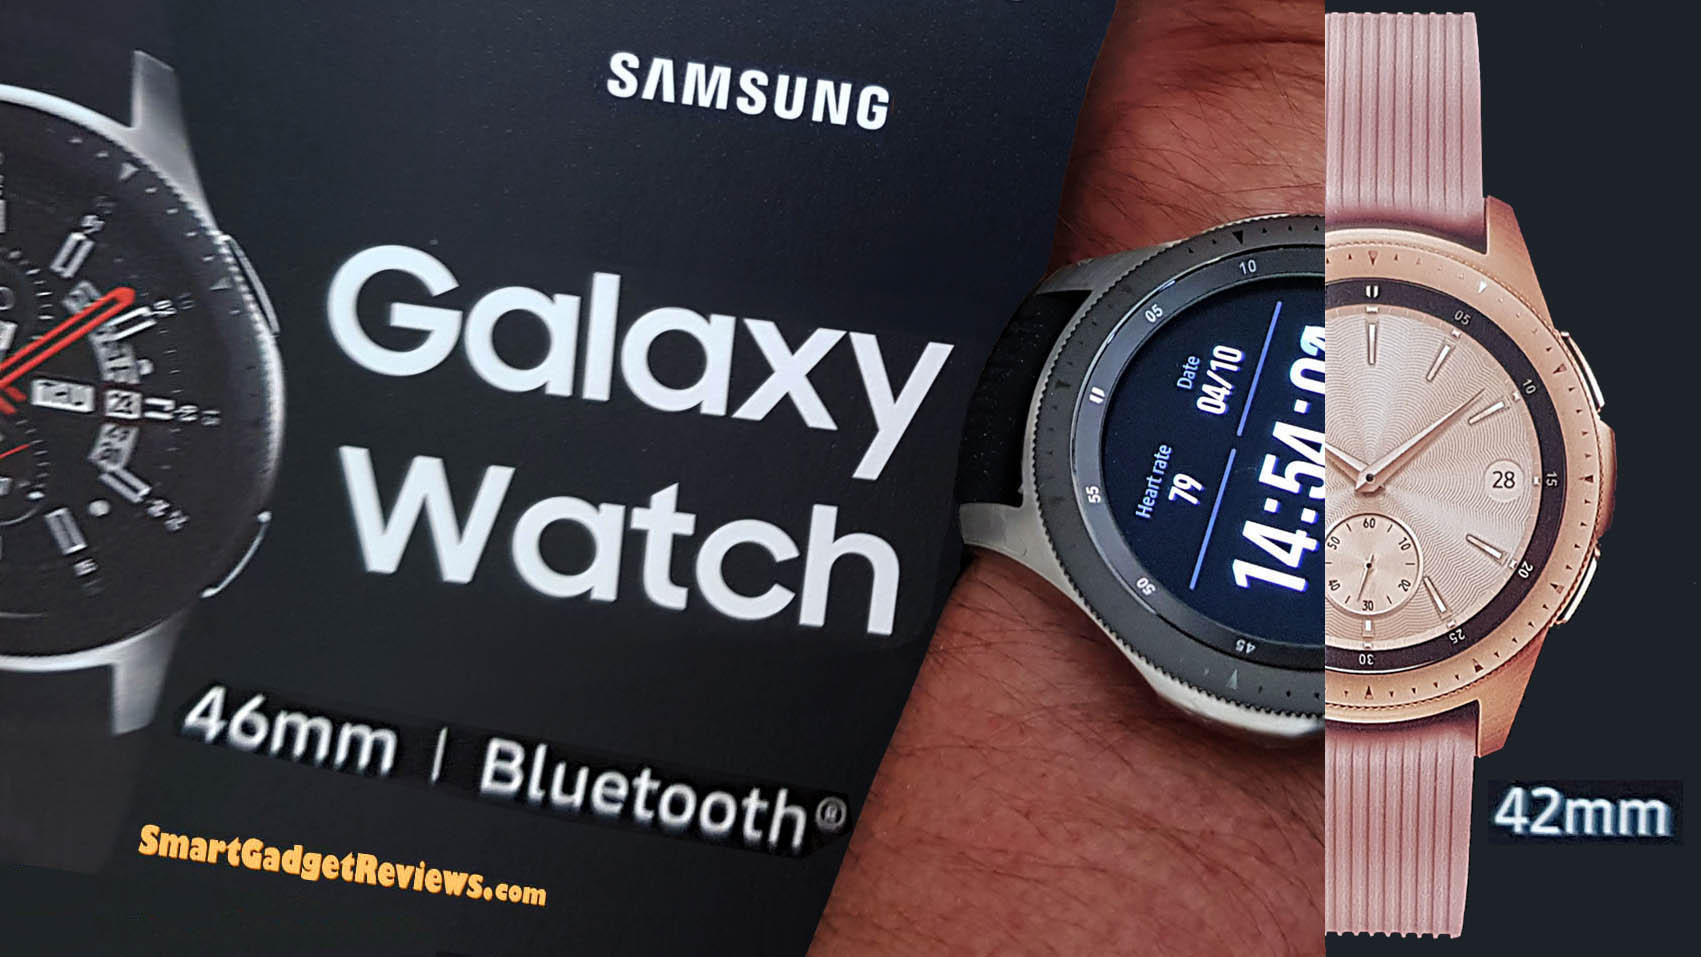 Samsung Galaxy Watch - Ultimate Smartwatch Comparison 2018